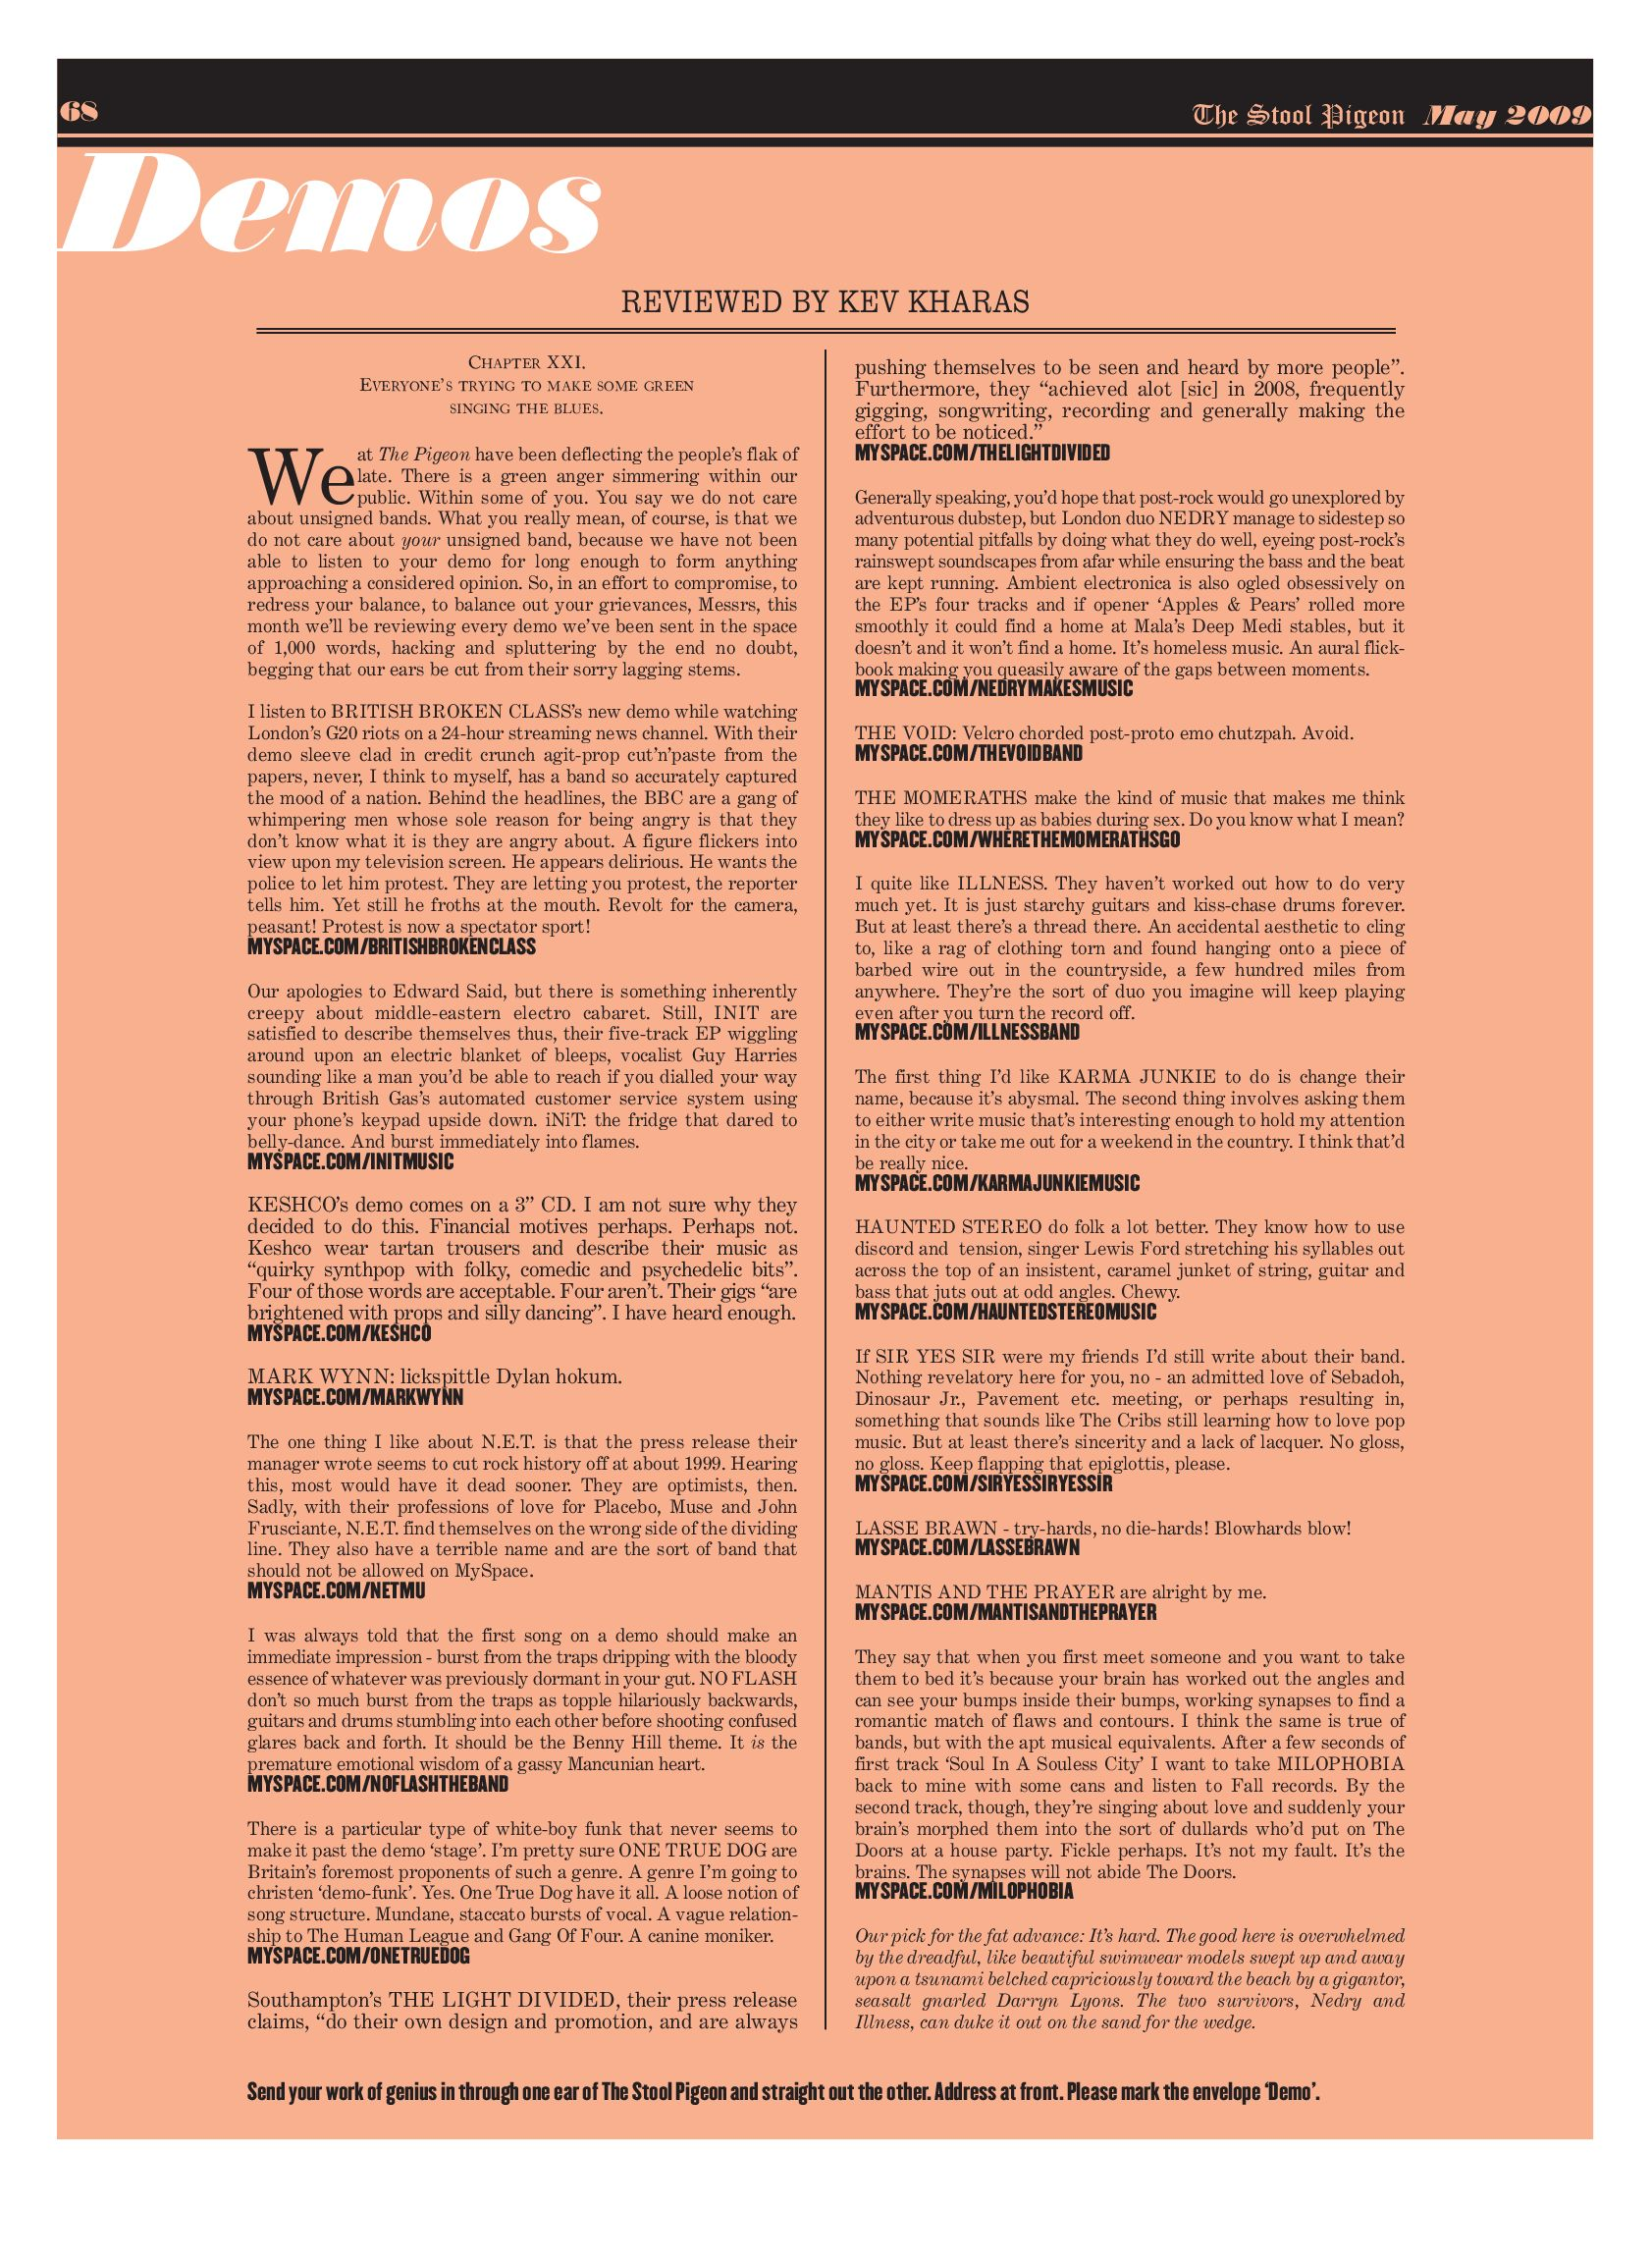 The Stool Pigeon Music Newspaper Issue 021